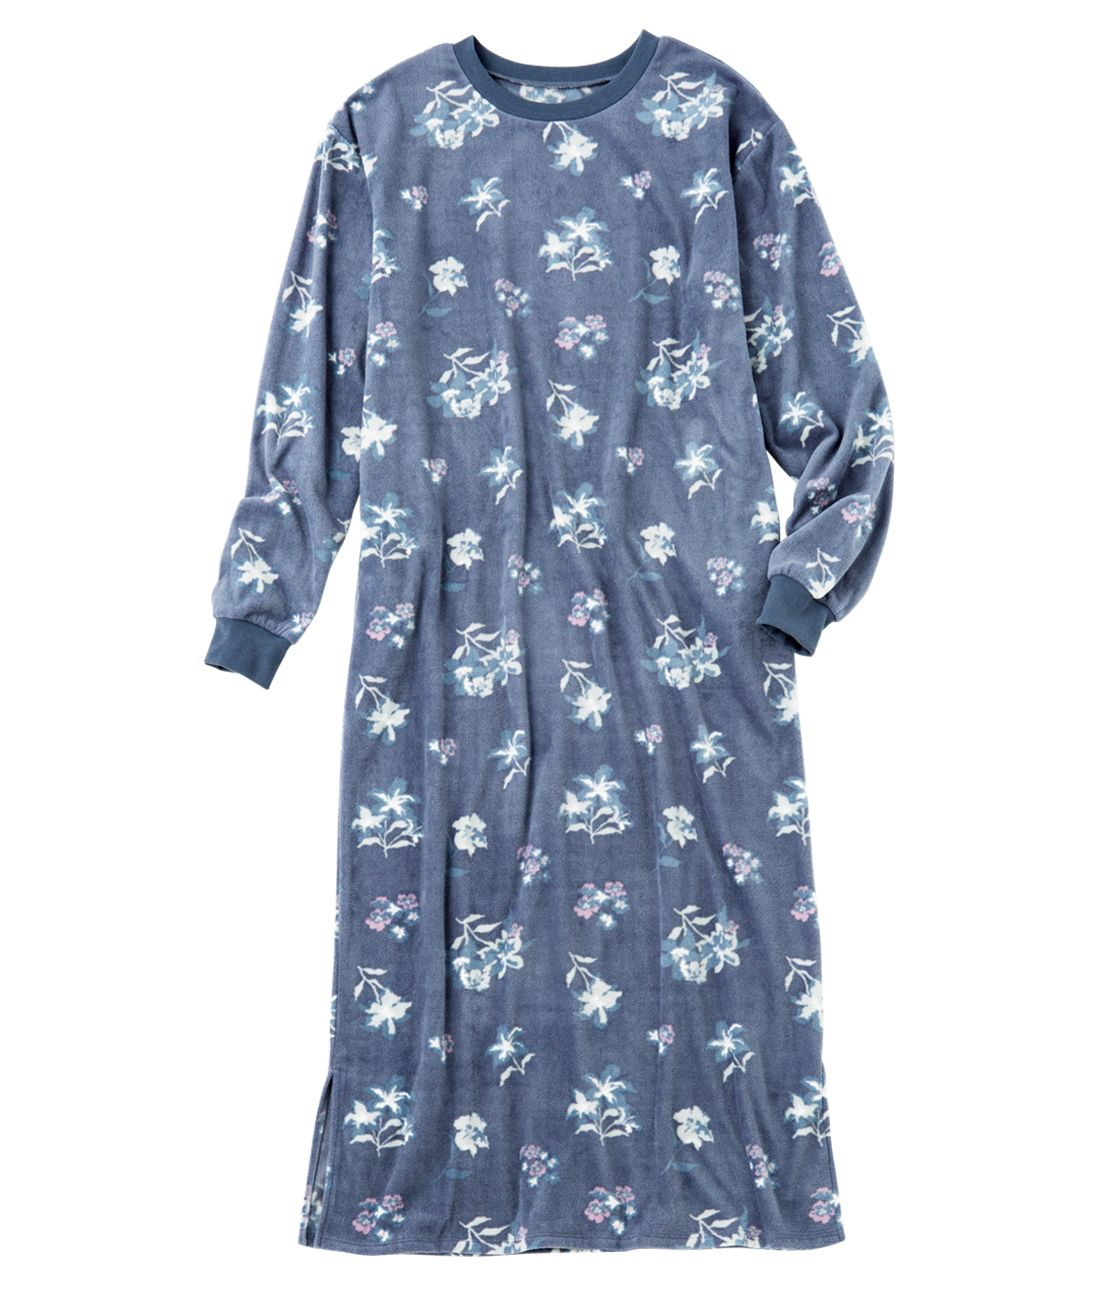 Good Three Pyi Flower fleece maxi dress